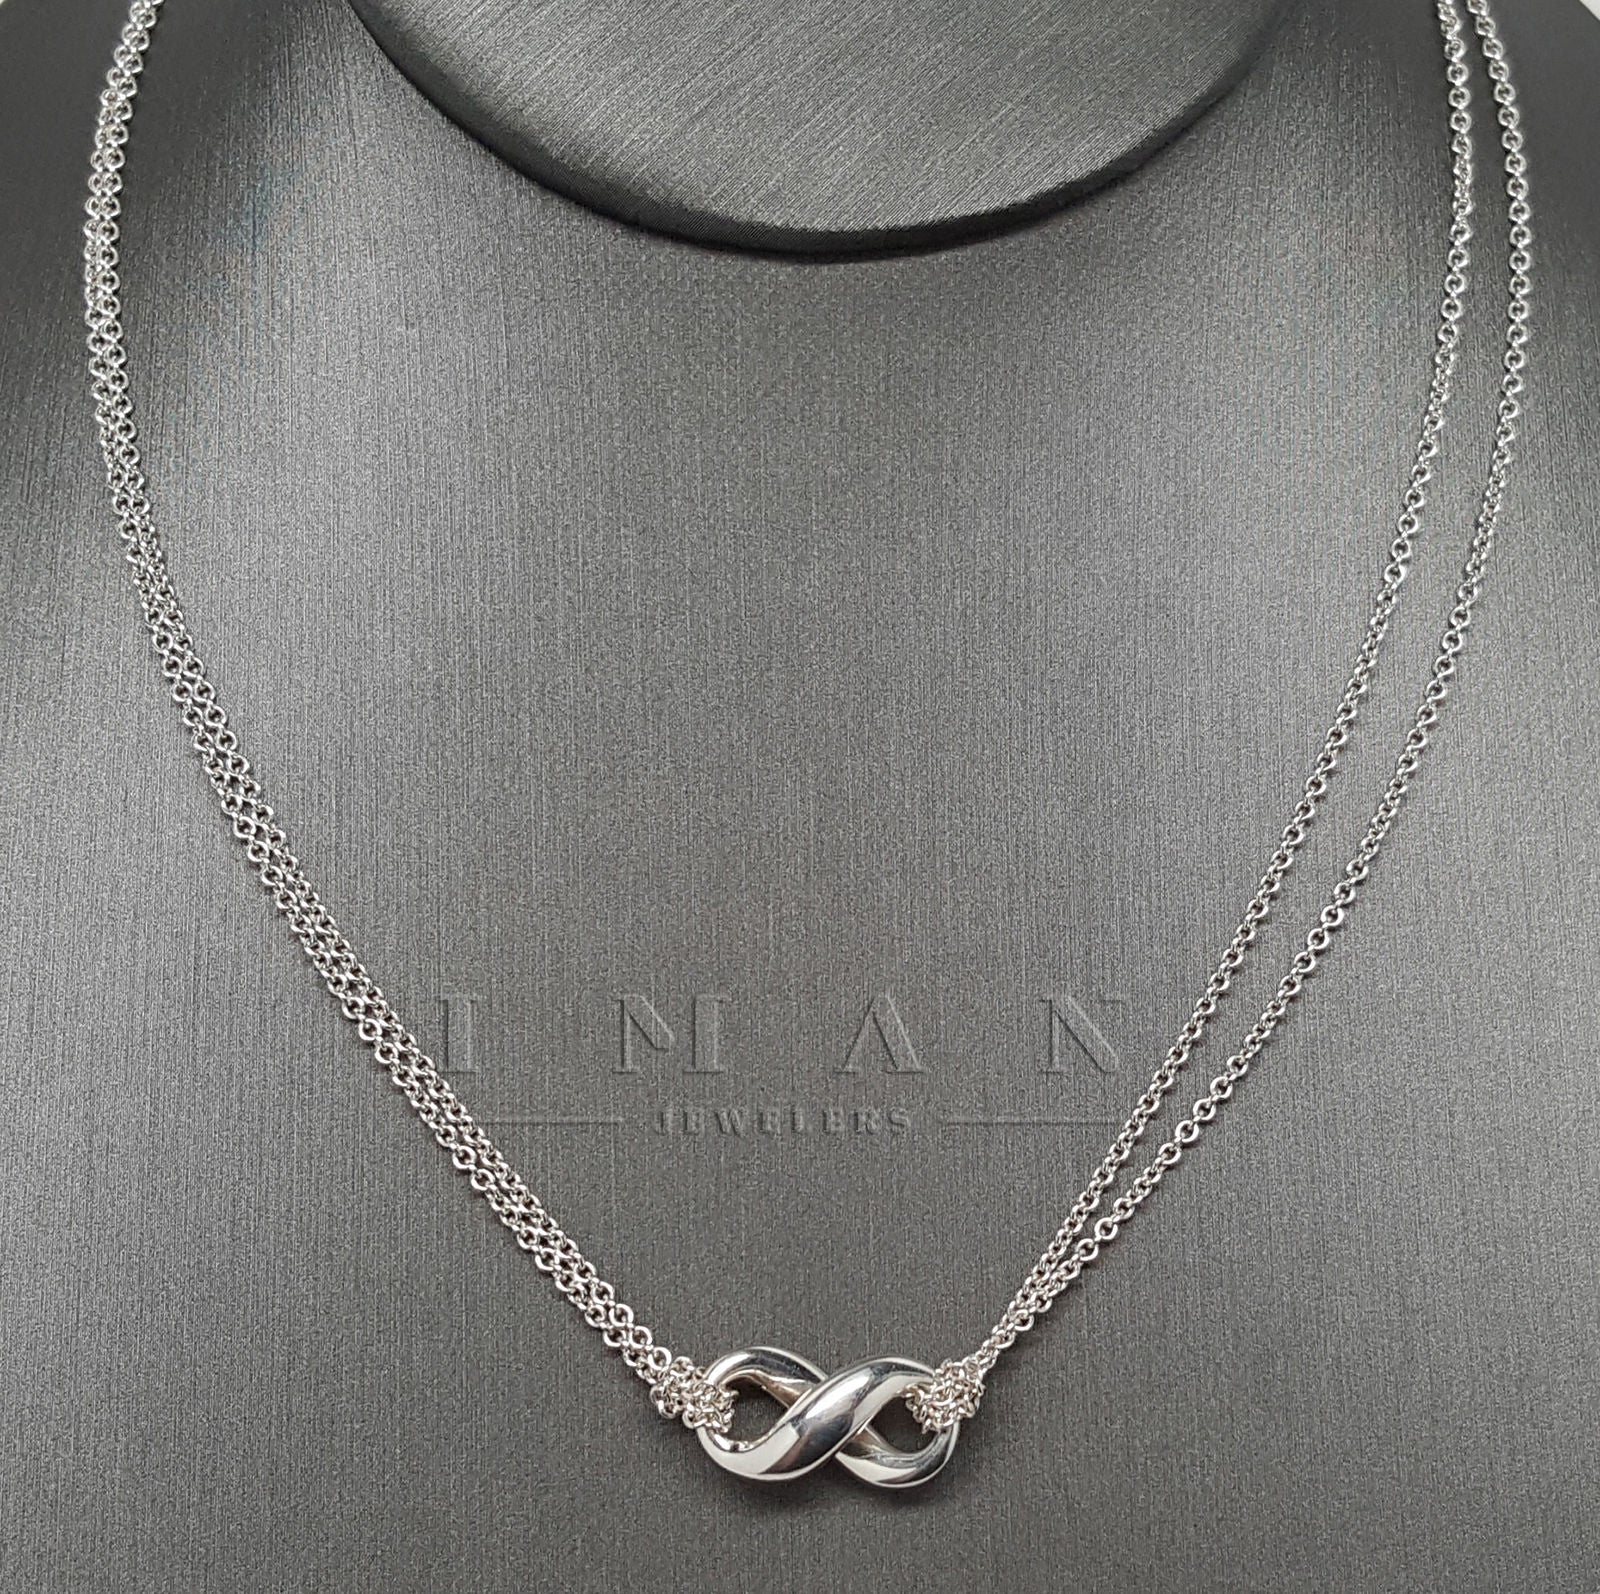 8b966bb75 Infinity Double Chain 925 Sterling Silver Pendant Necklace Tiffany & Co. ∞  Infinity Double Chain 925 Sterling Silver Pendant Necklace ...